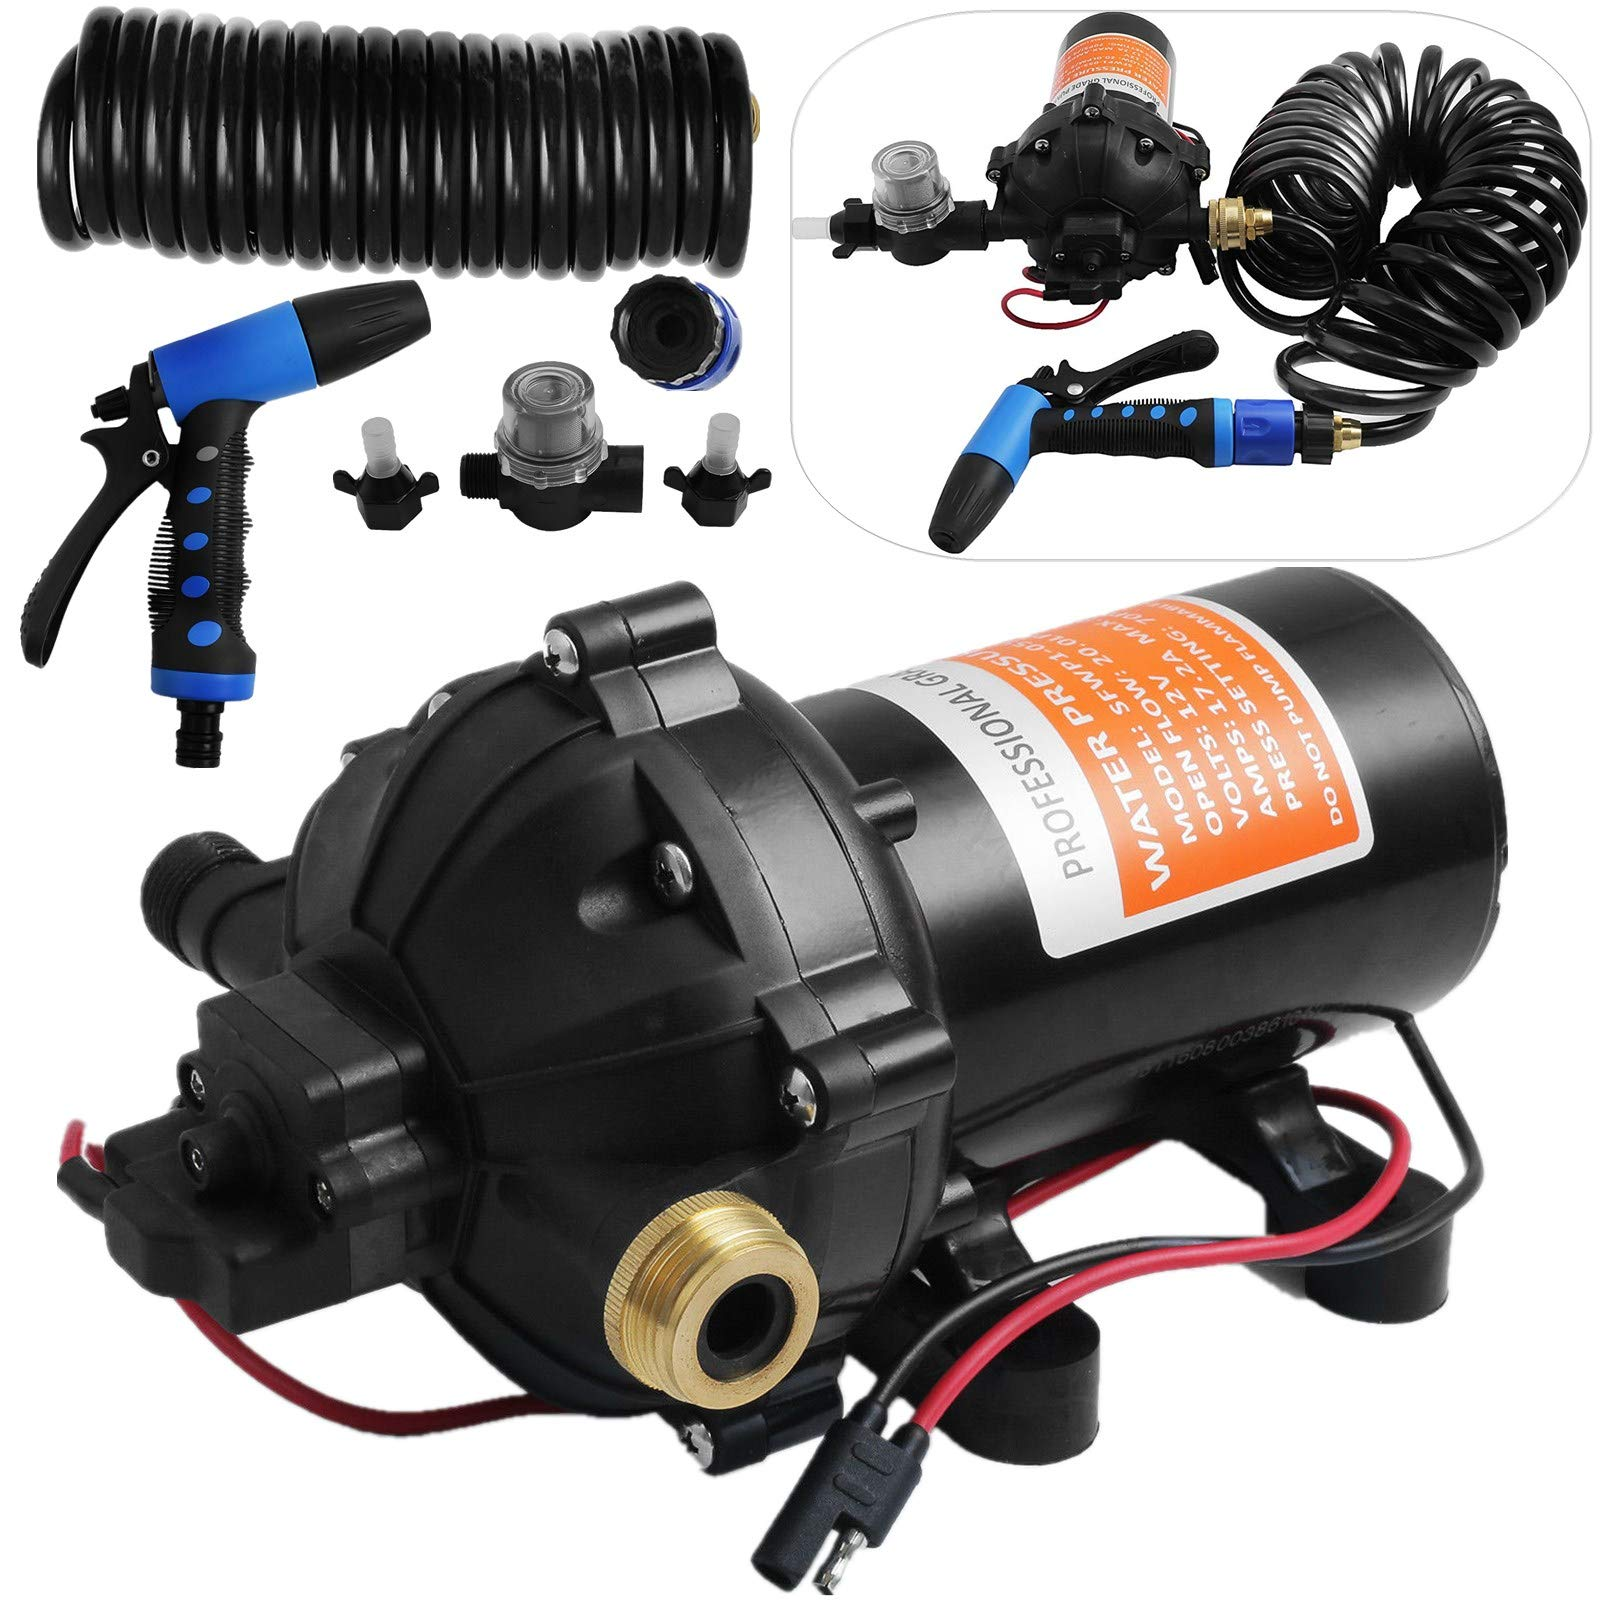 Happybuy RV Water Pump 5.3 GPM 5.5 Gallons Per Minute 12V Water Pump Automatic 70 PSI Diaphragm Pump with 25 Foot Coiled Hose Washdown Pumps for Boats Caravan Rv Marine Yacht by Happybuy